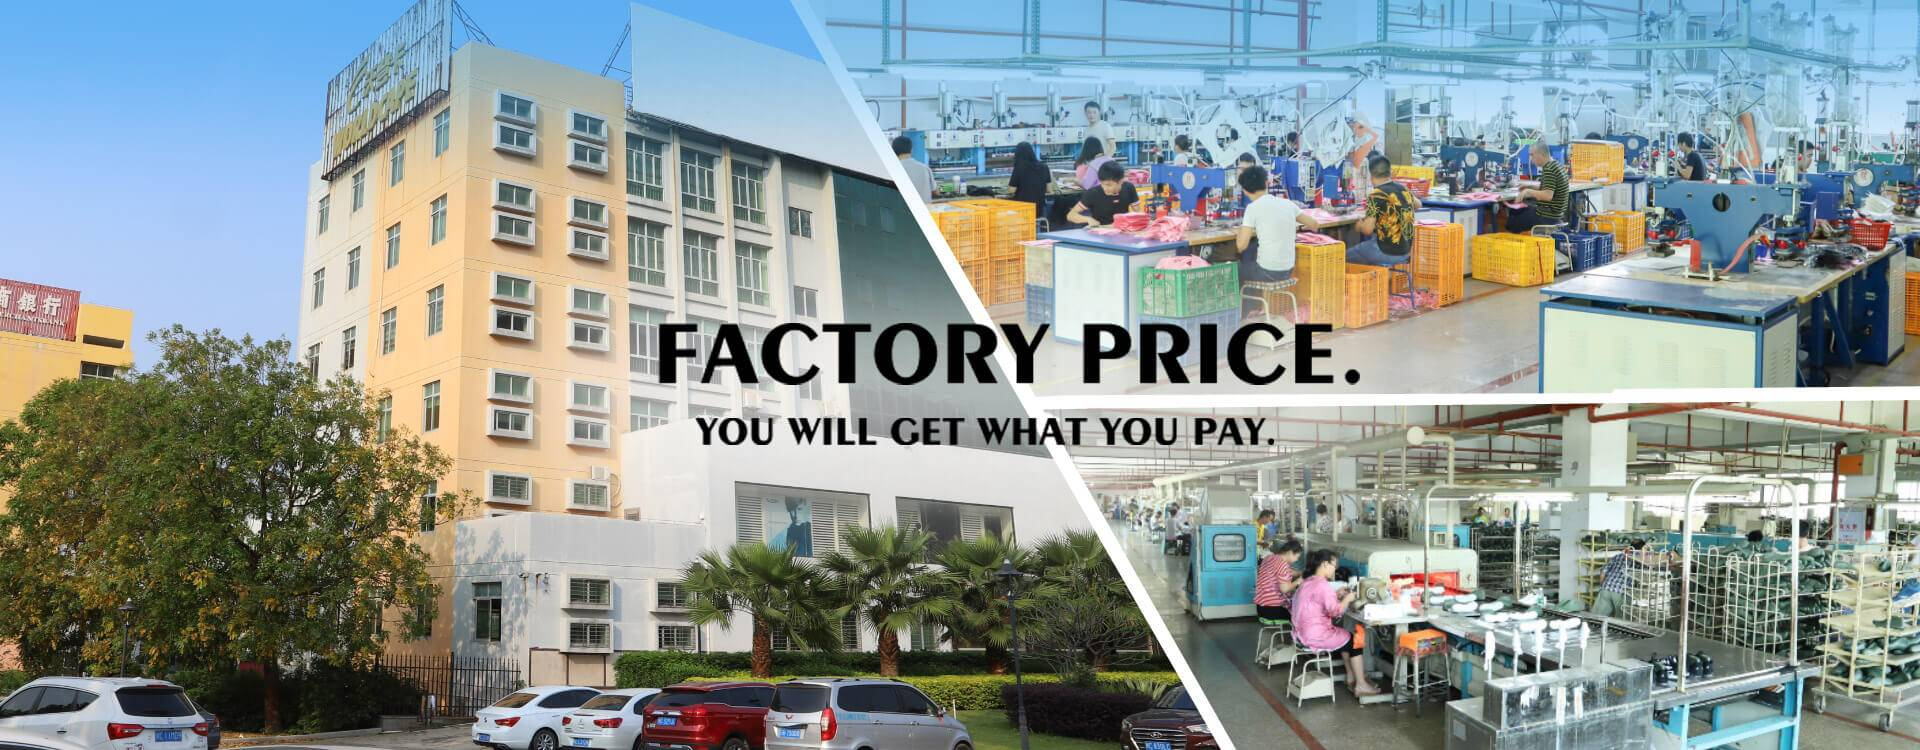 FACTORY PRICE. YOU WILL GET WHAT YOU PAY.